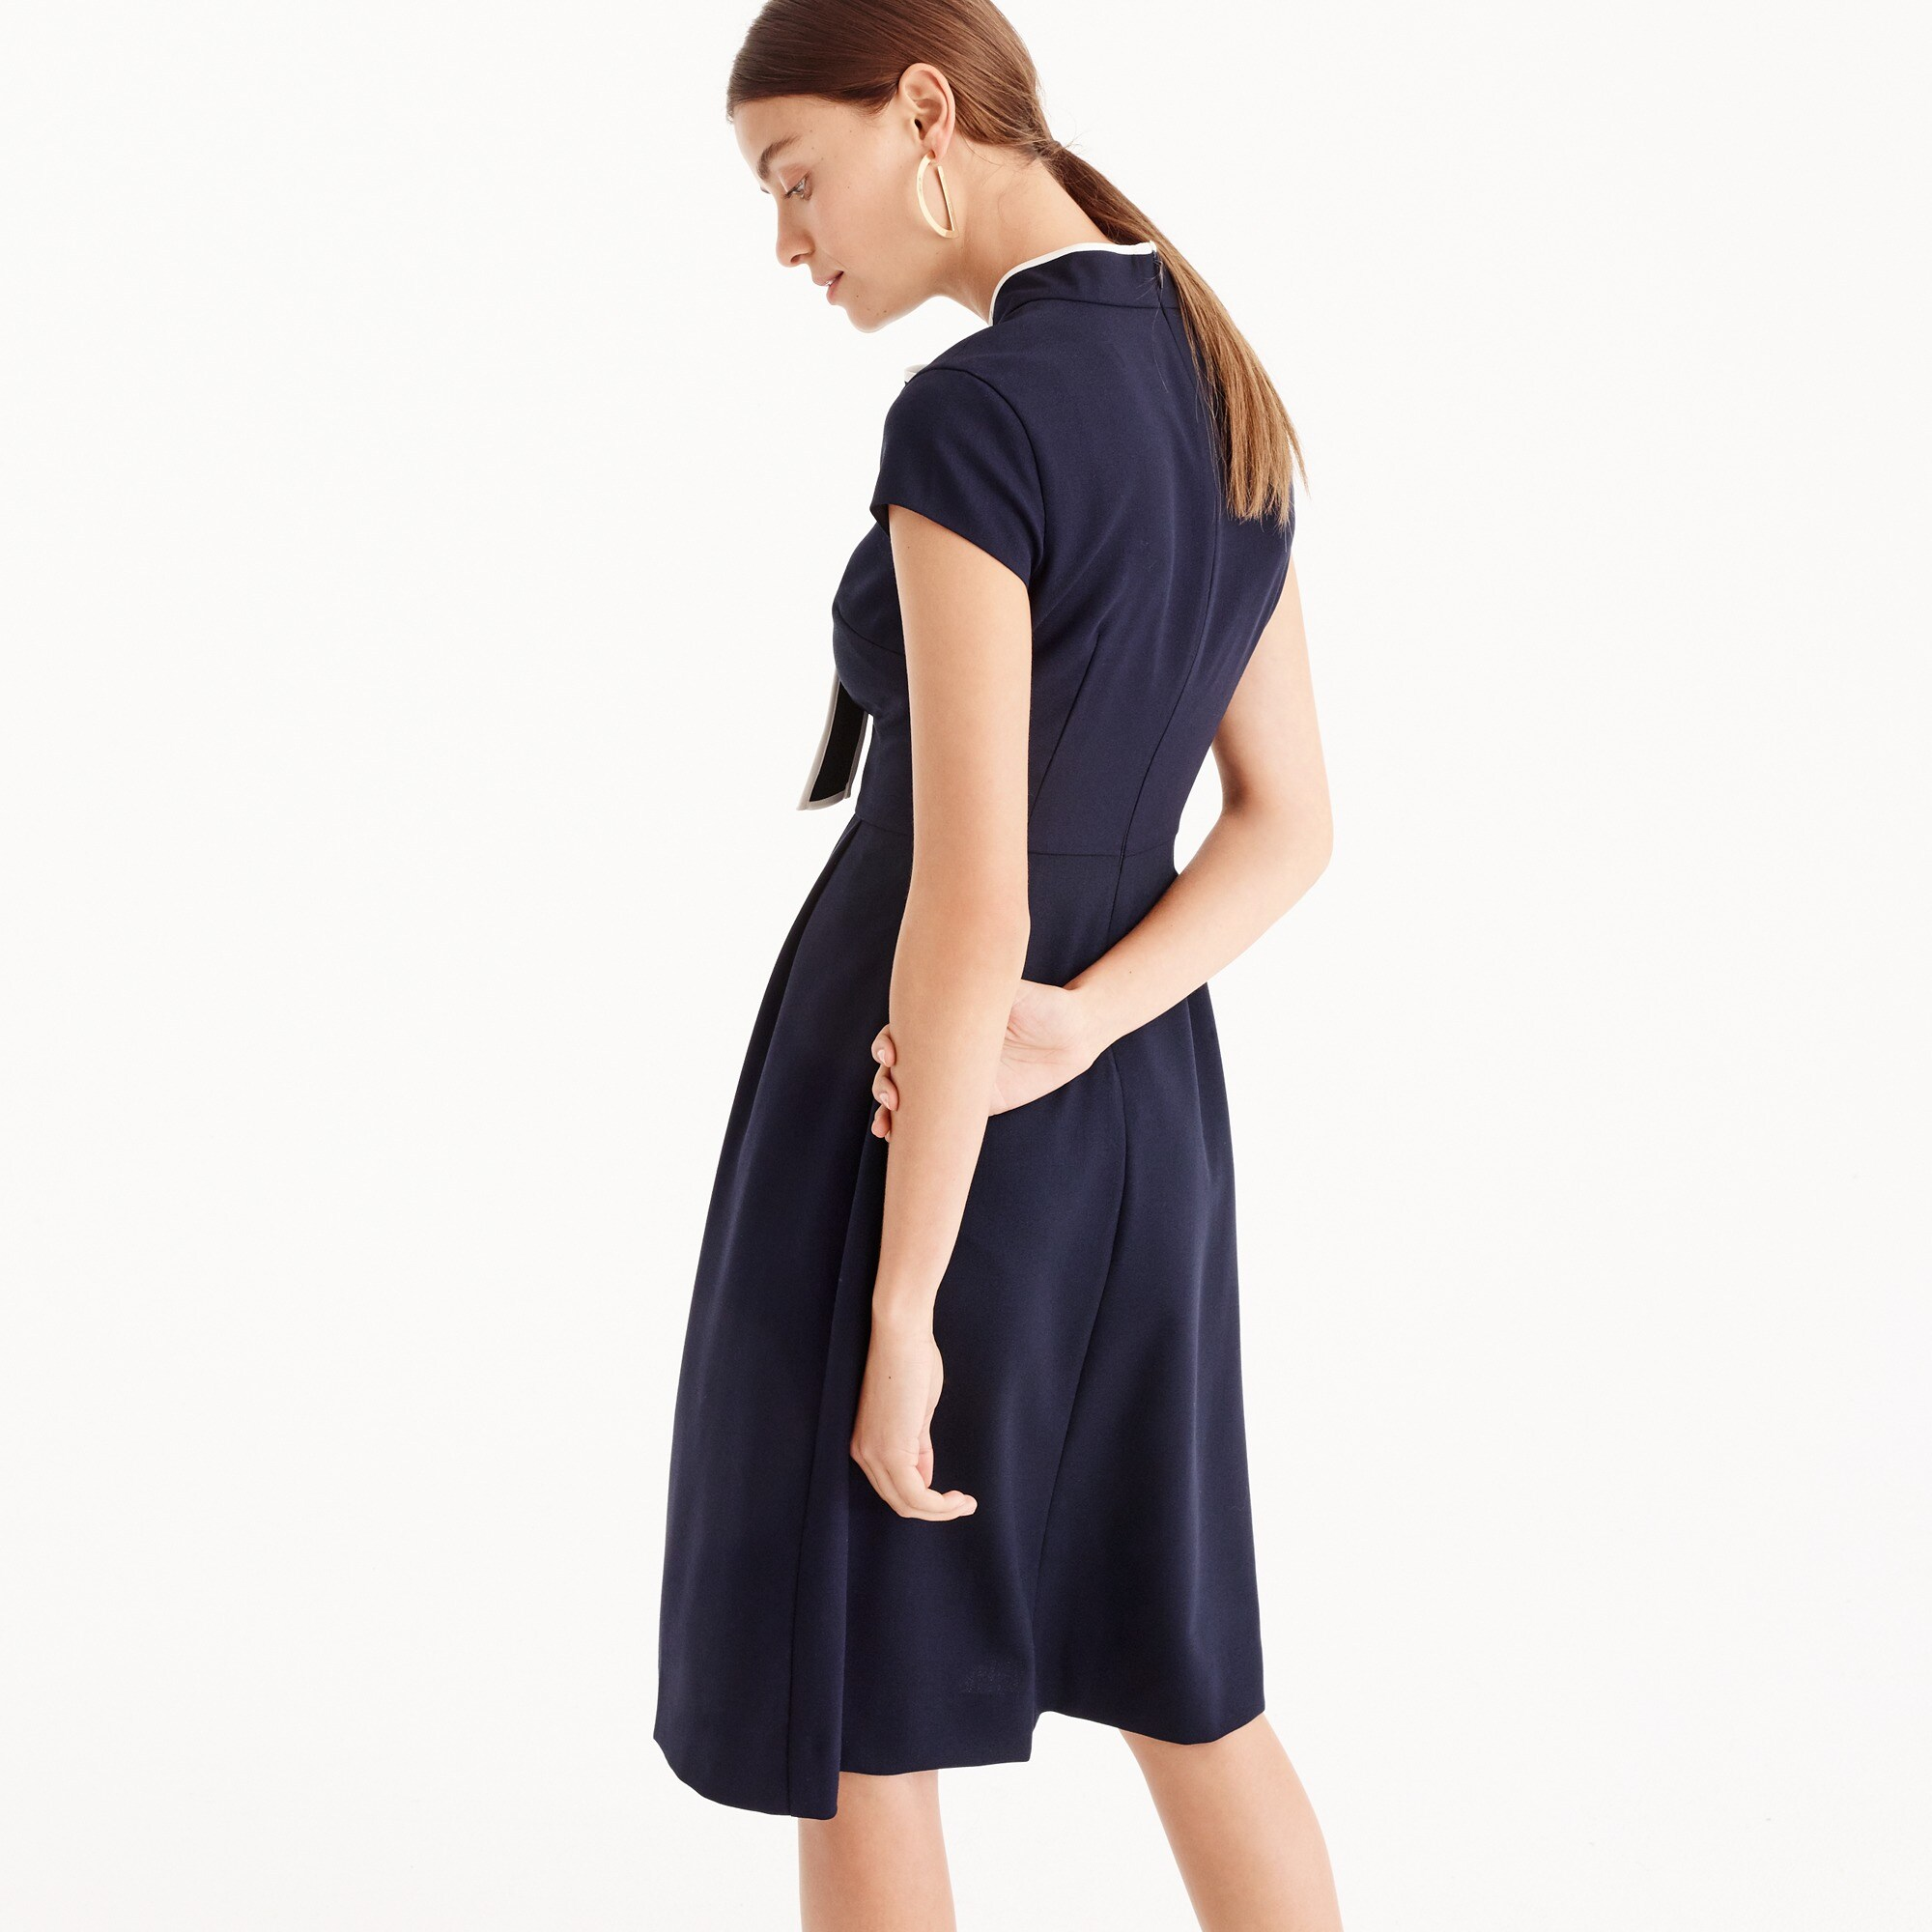 Tie-neck dress in Italian wool crepe